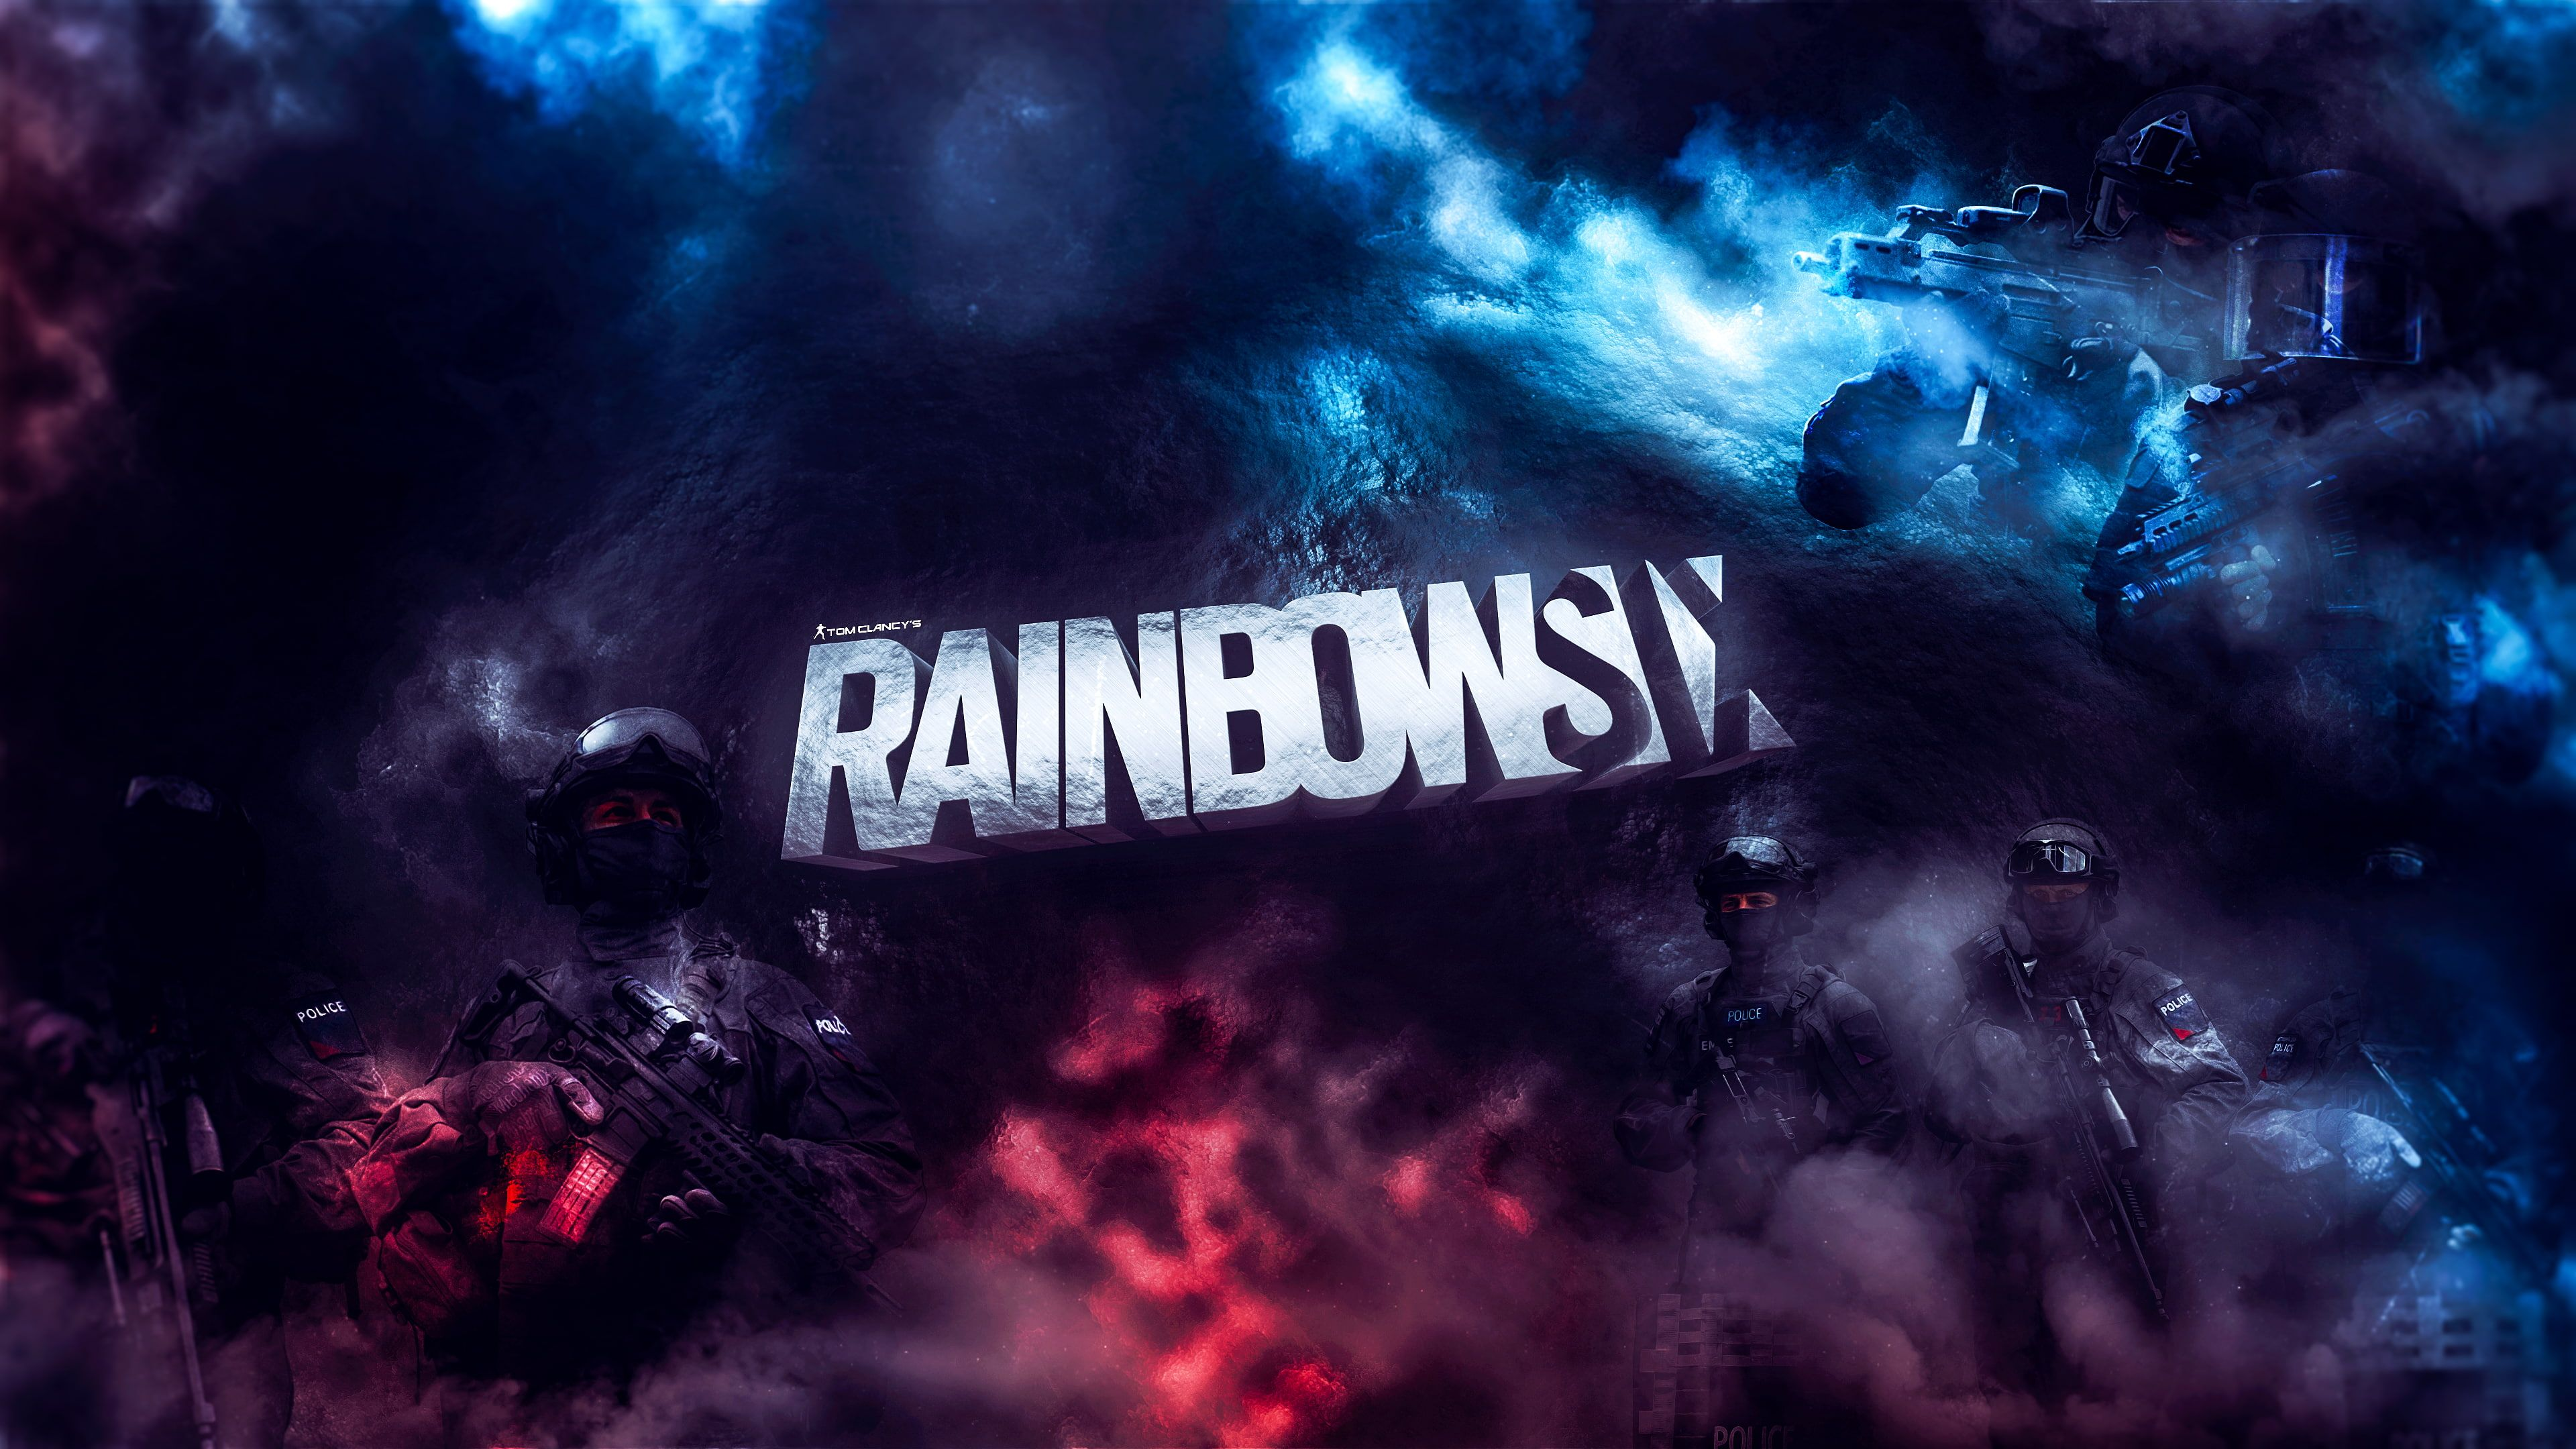 Rainbow 6 Siege Video Games Games Posters Games Art Game Logo